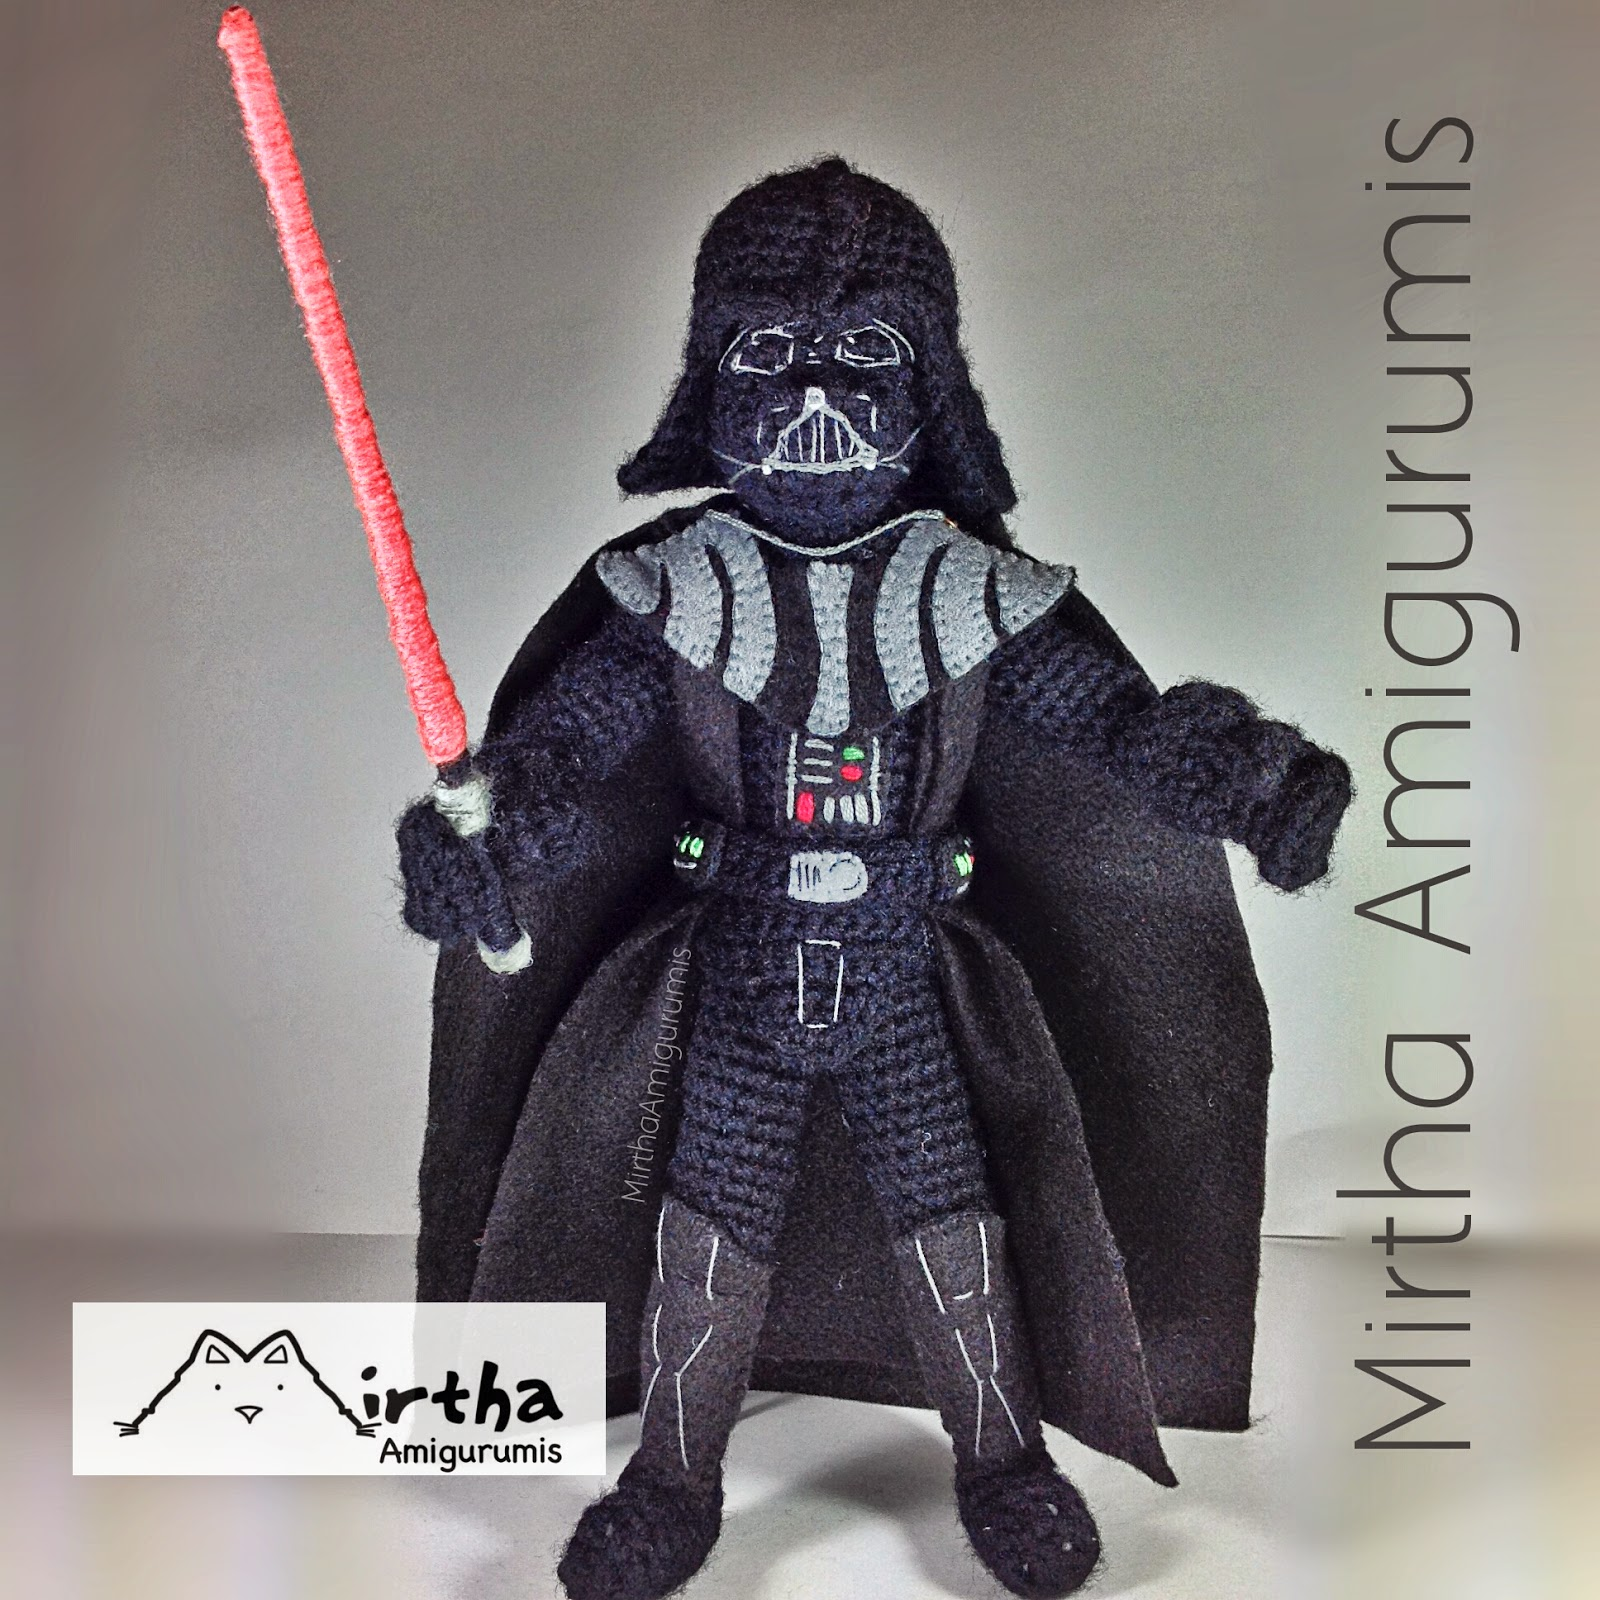 Amigurumi Sewing Machine Pattern : Mirtha Amigurumis: Darth Vader Amigurumi star wars (NOT ...